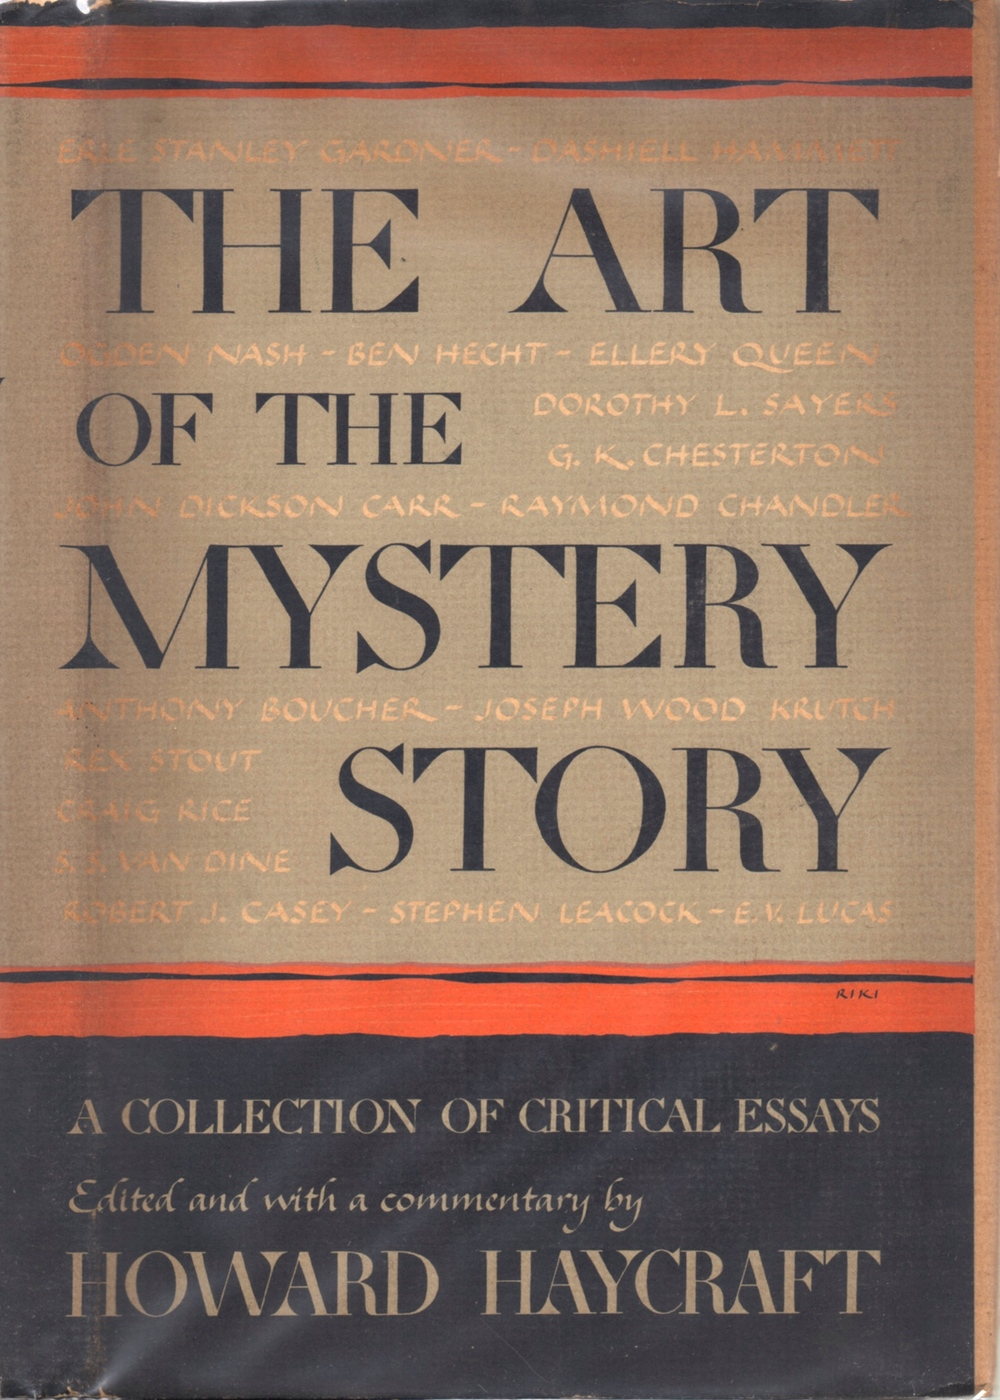 The dust jacket to the first edition of  The Art of the Mystery Story , published in 1946.